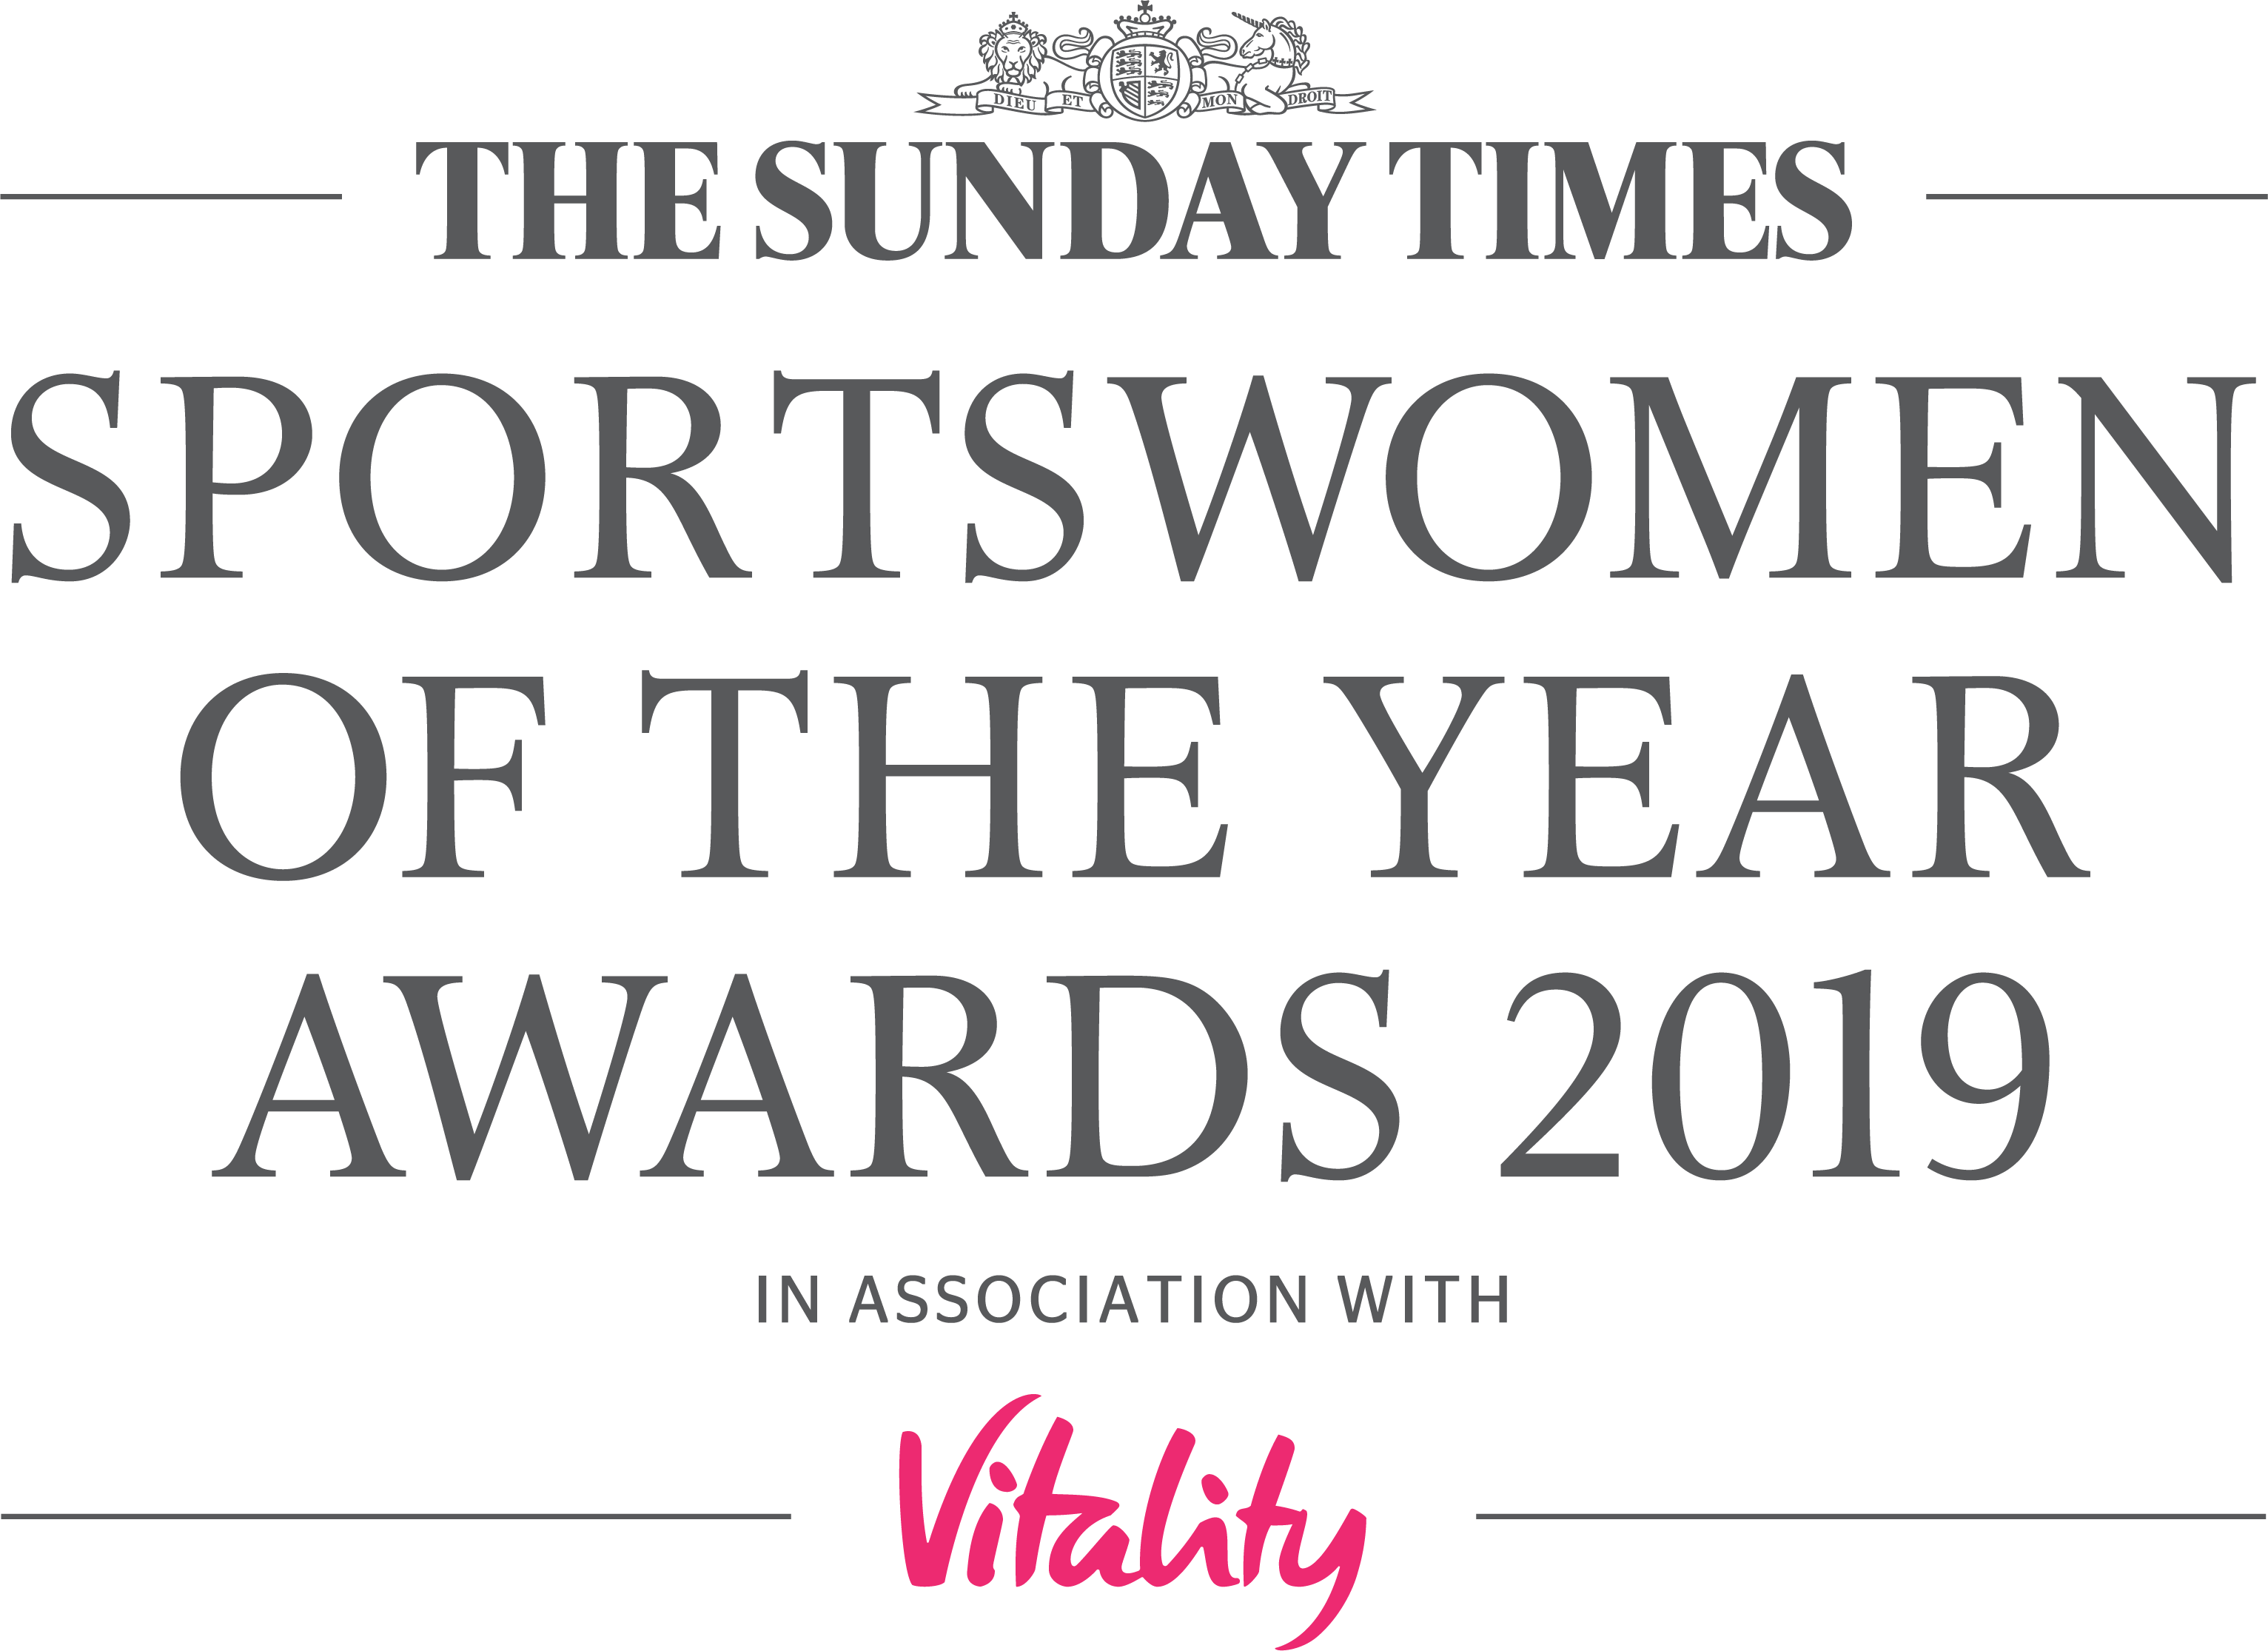 Sportswomen of the Year Awards 2019